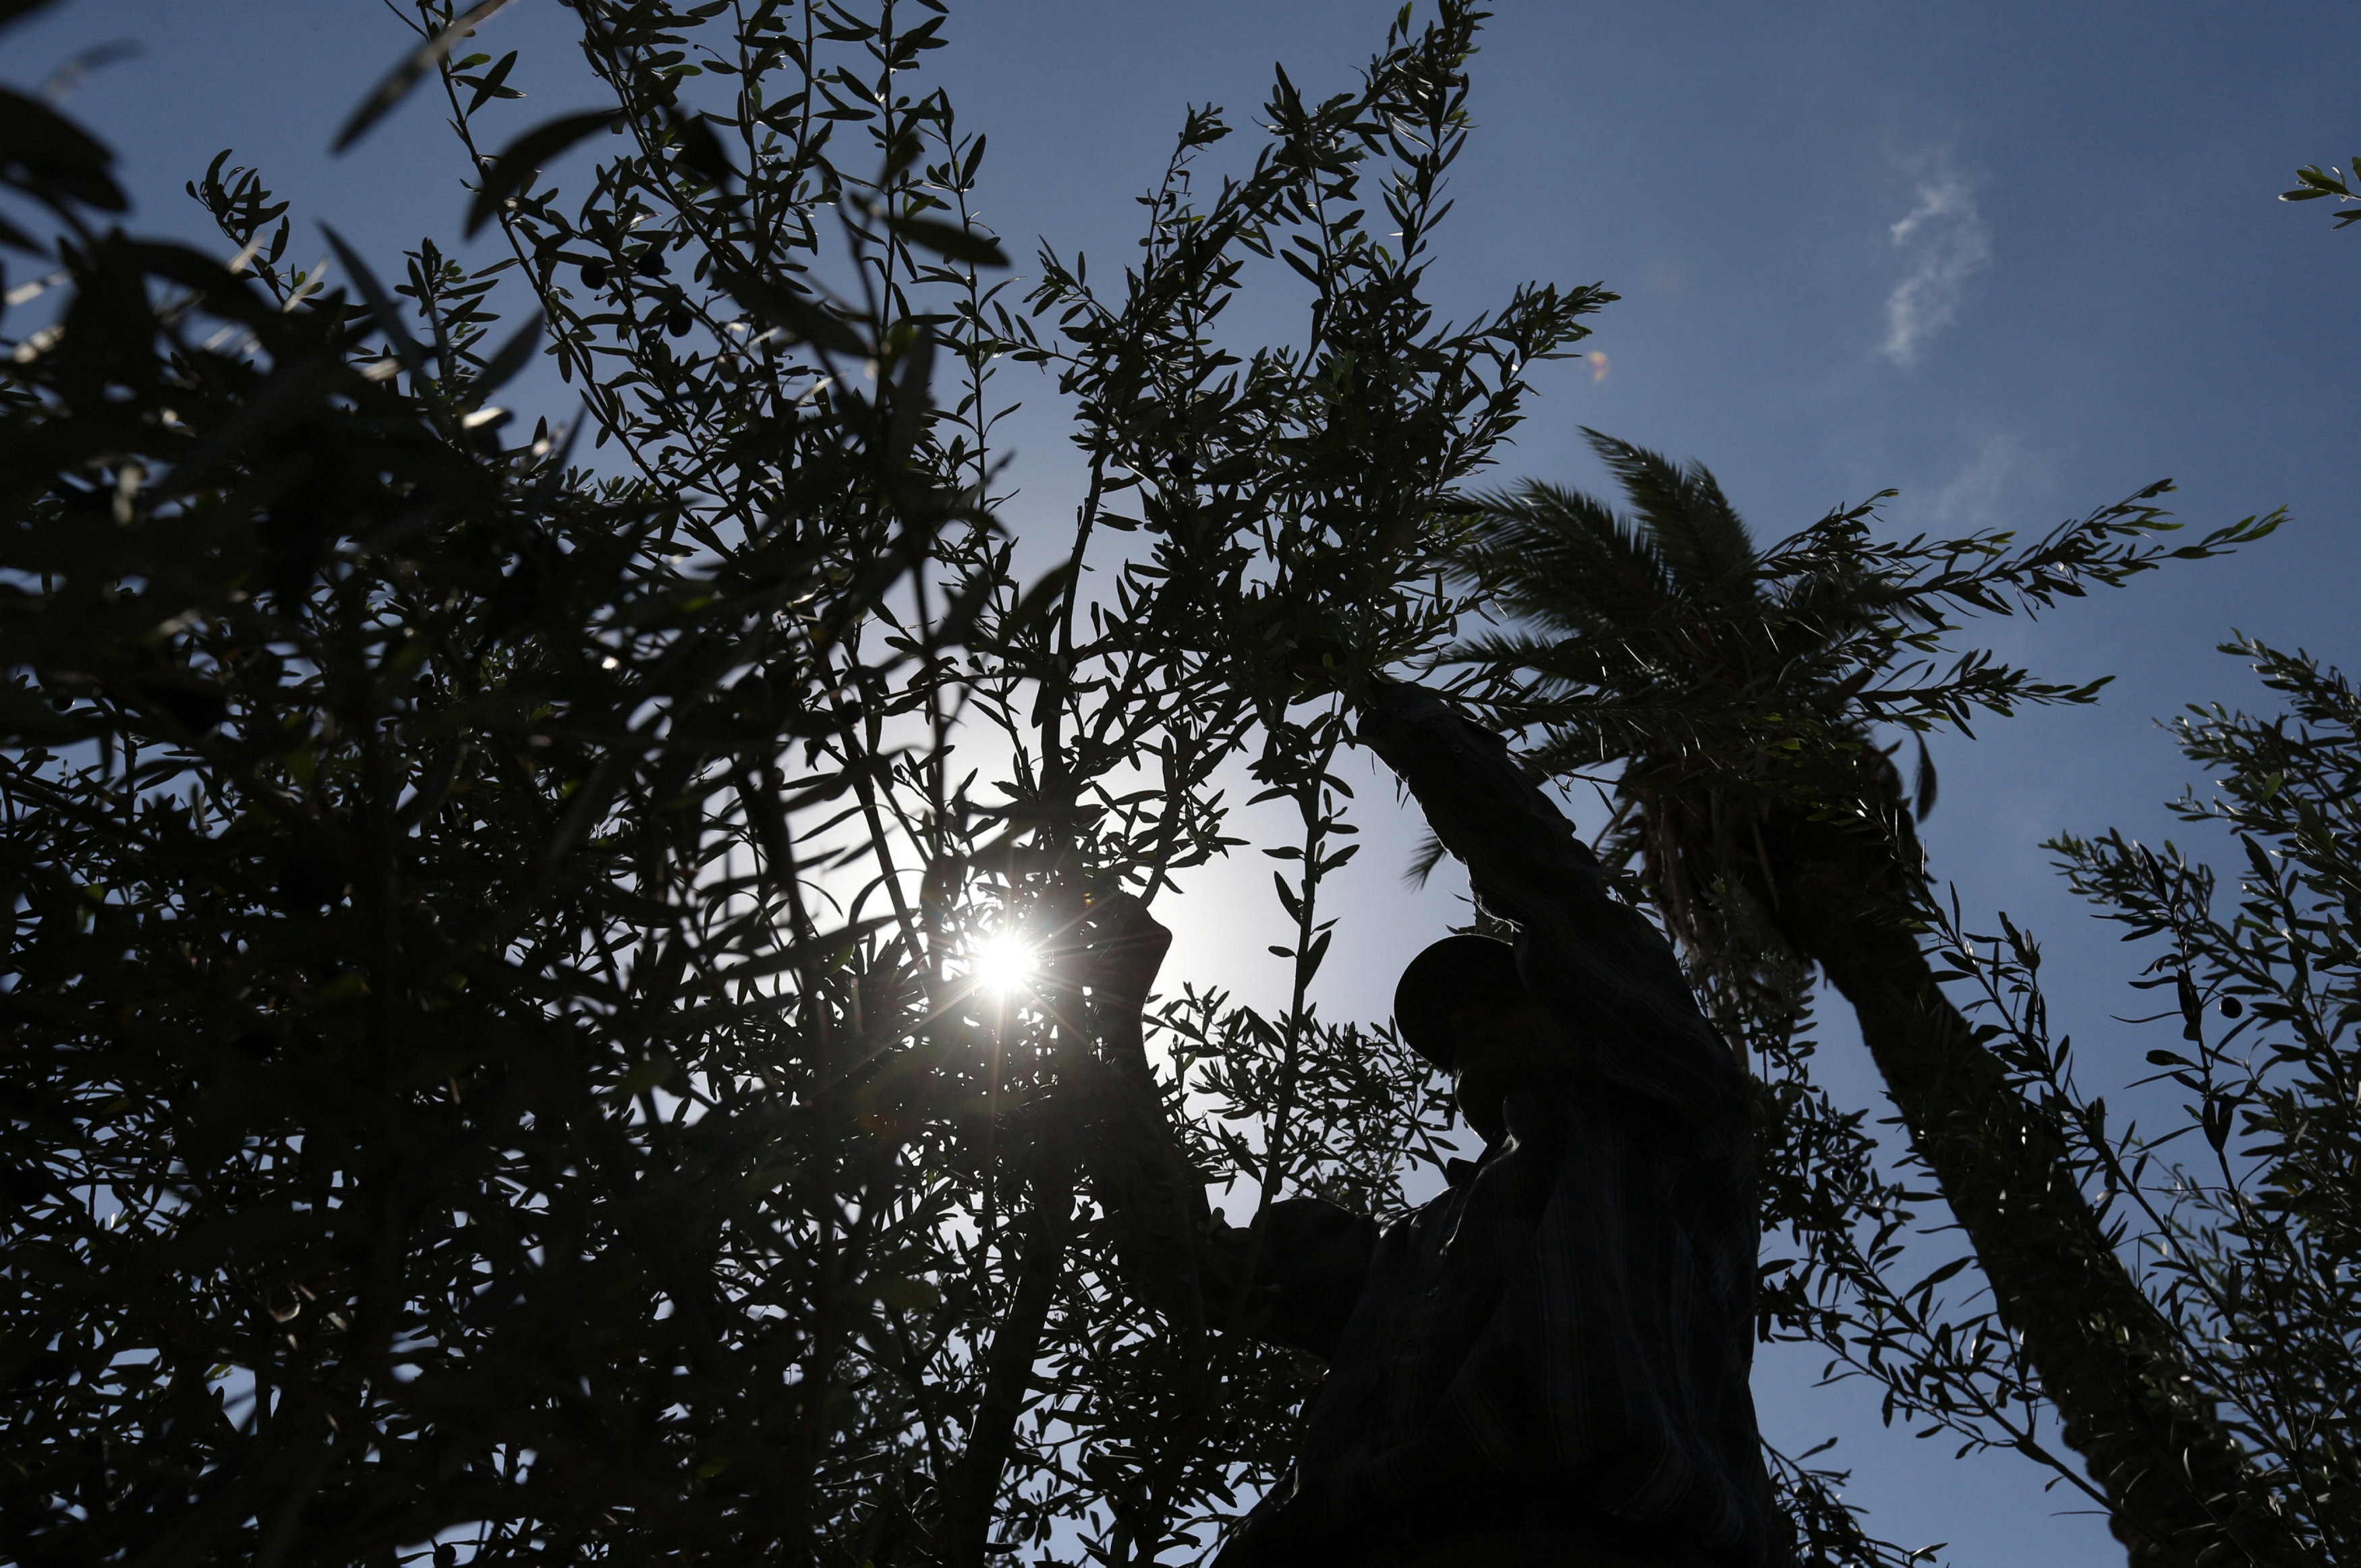 Palestinian man picks olives during harvest season at a farm in Khan Younis, the southern Gaza Strip